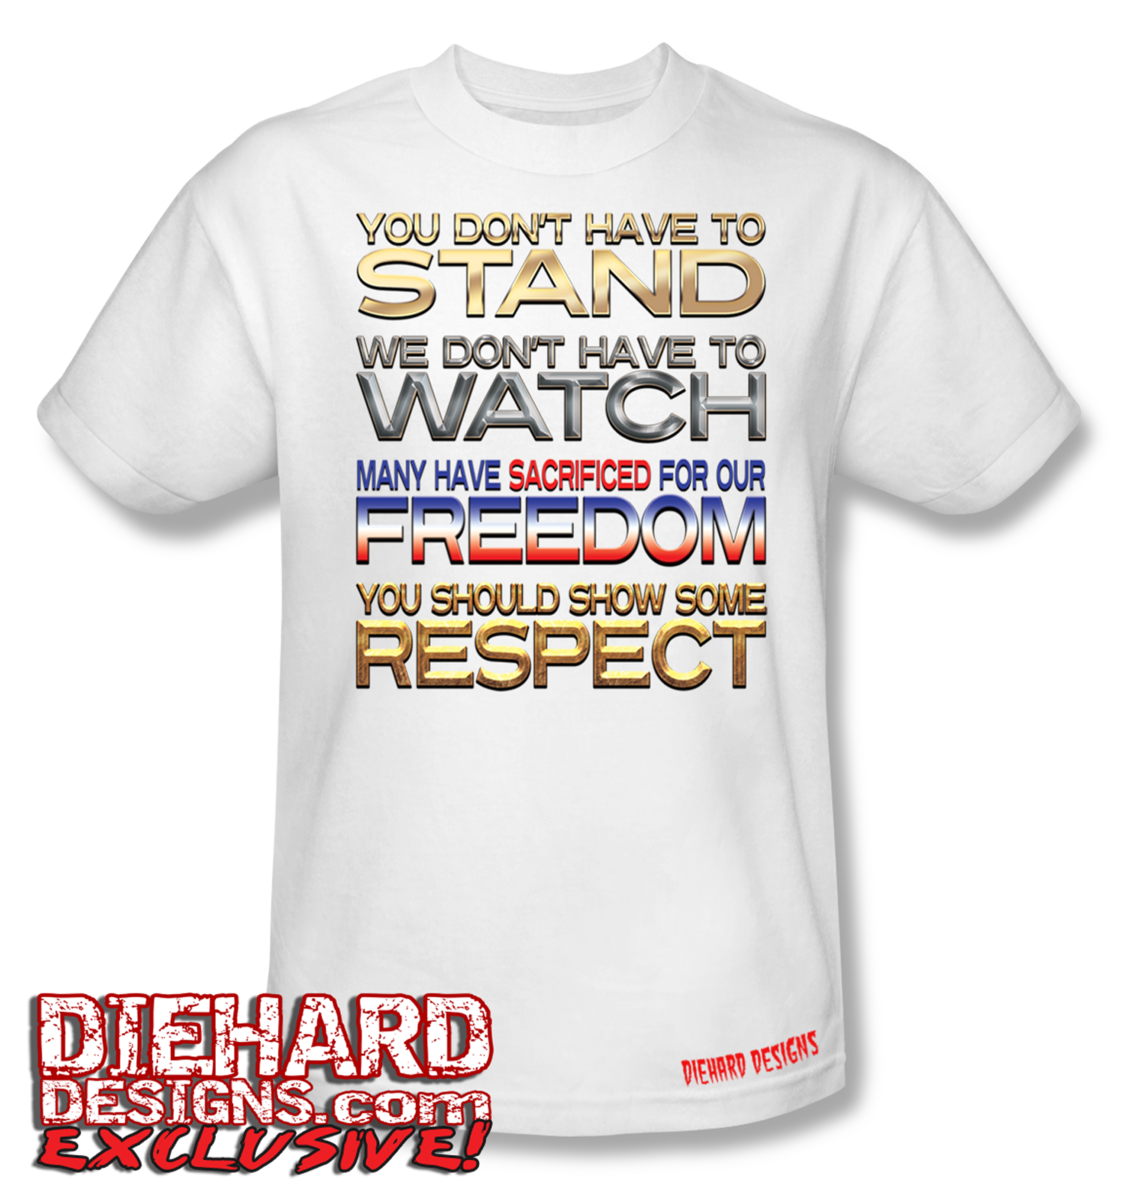 Stand watch freedom respect t shirt for How to copyright t shirt designs